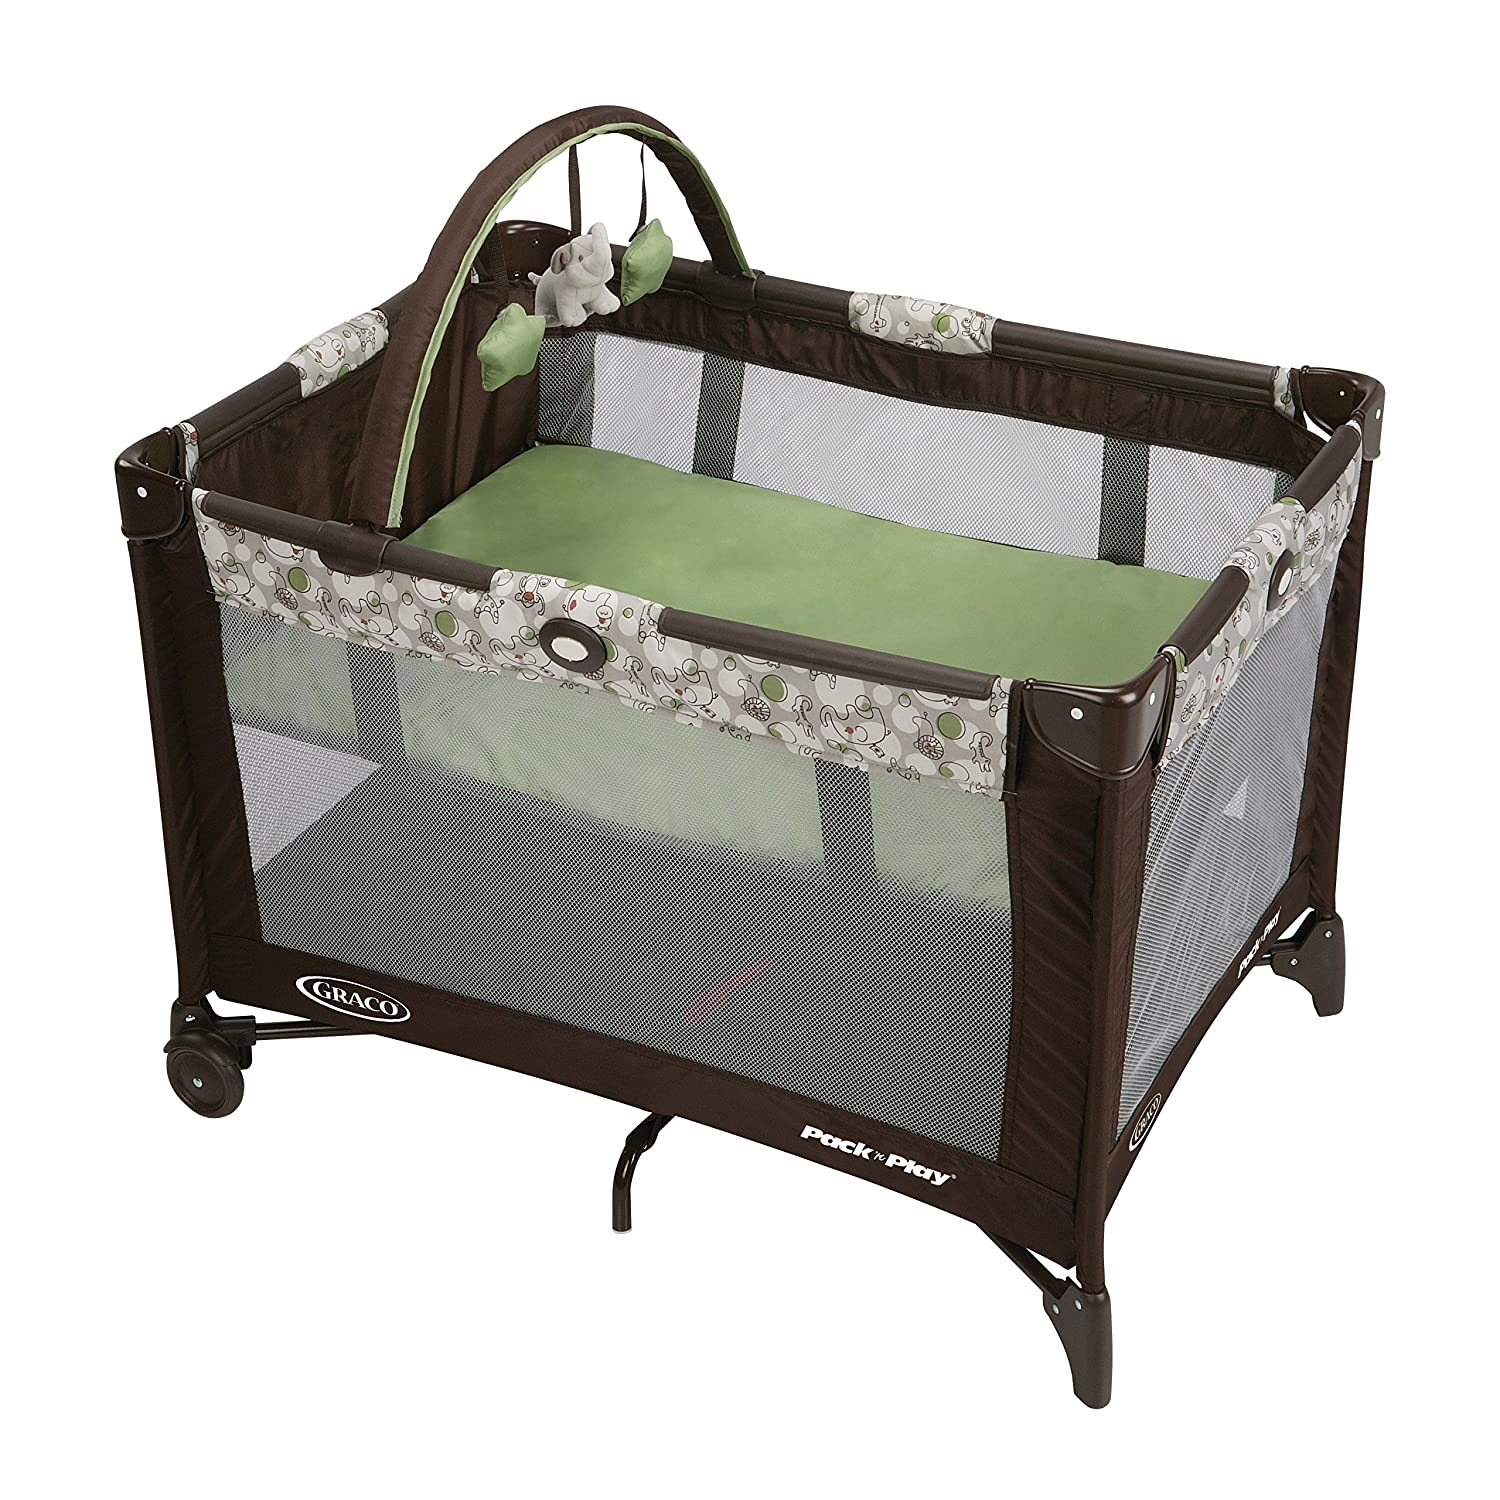 Graco Pack N Play Playard with Automatic Folding Feet, Zuba 1926286